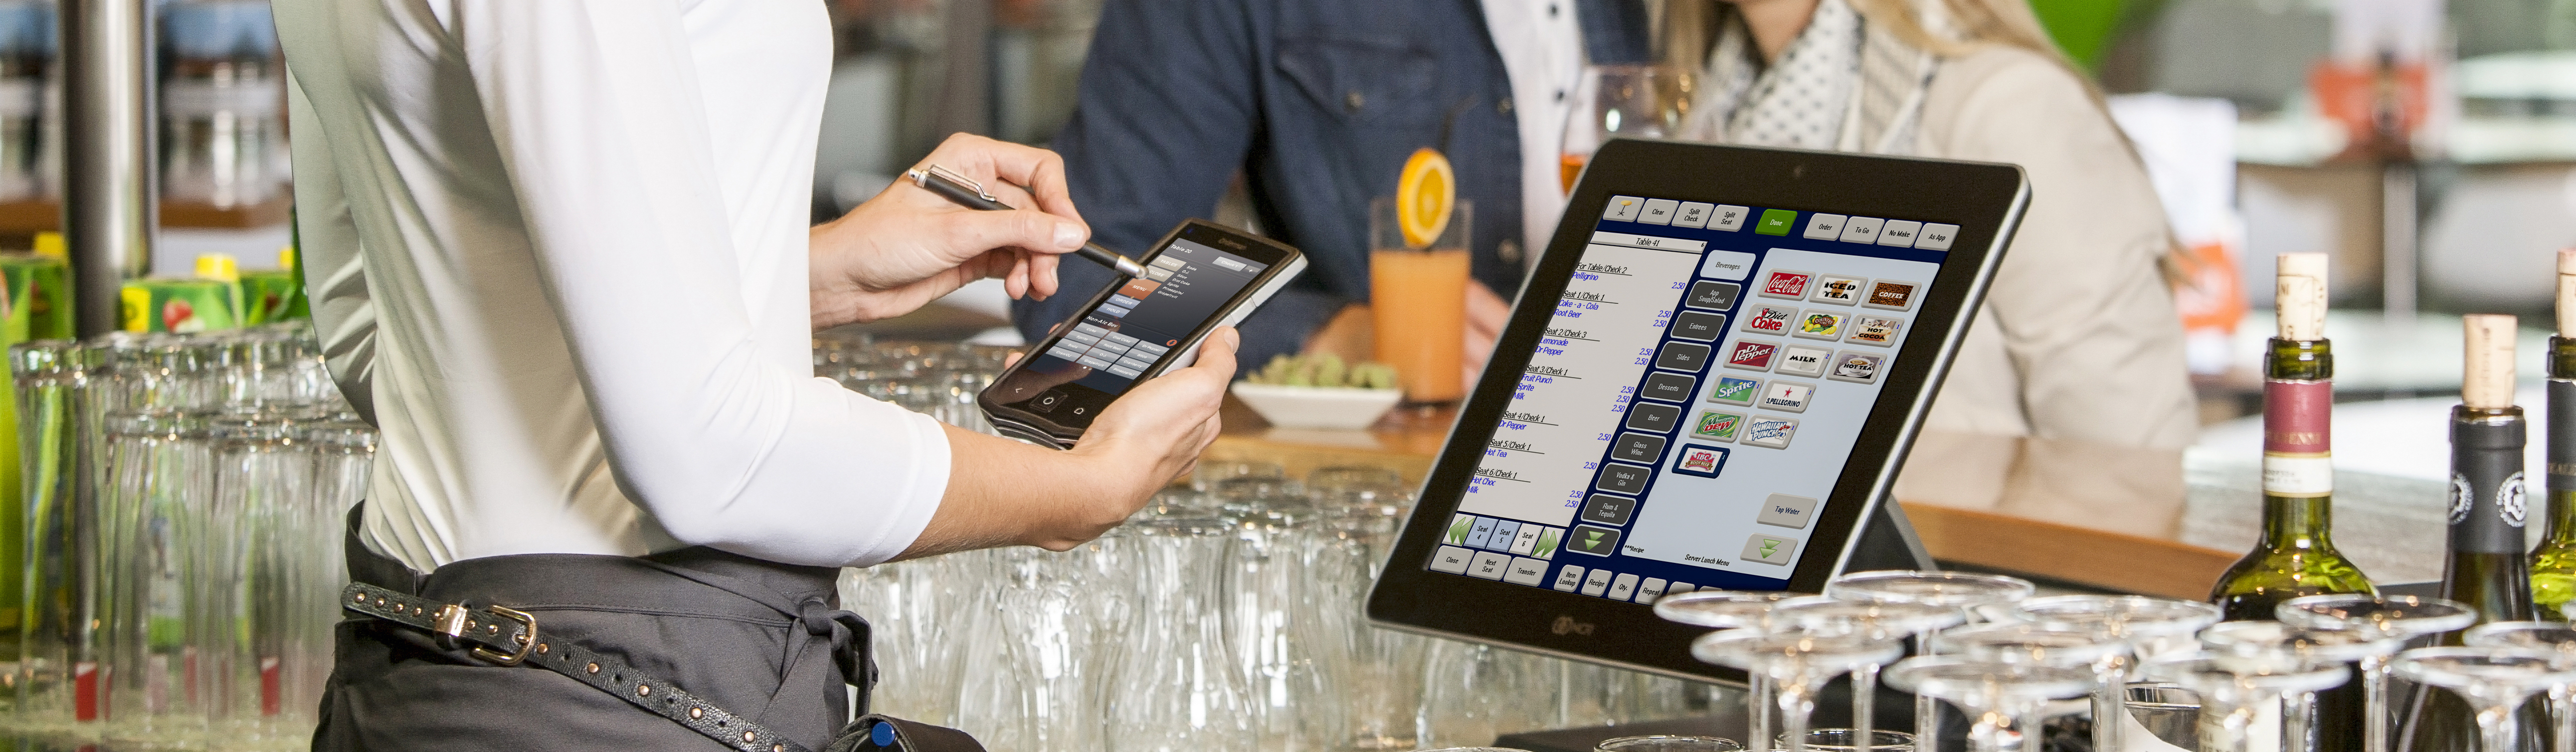 7shifts & Aloha NCR POS integration: a match made in paradise